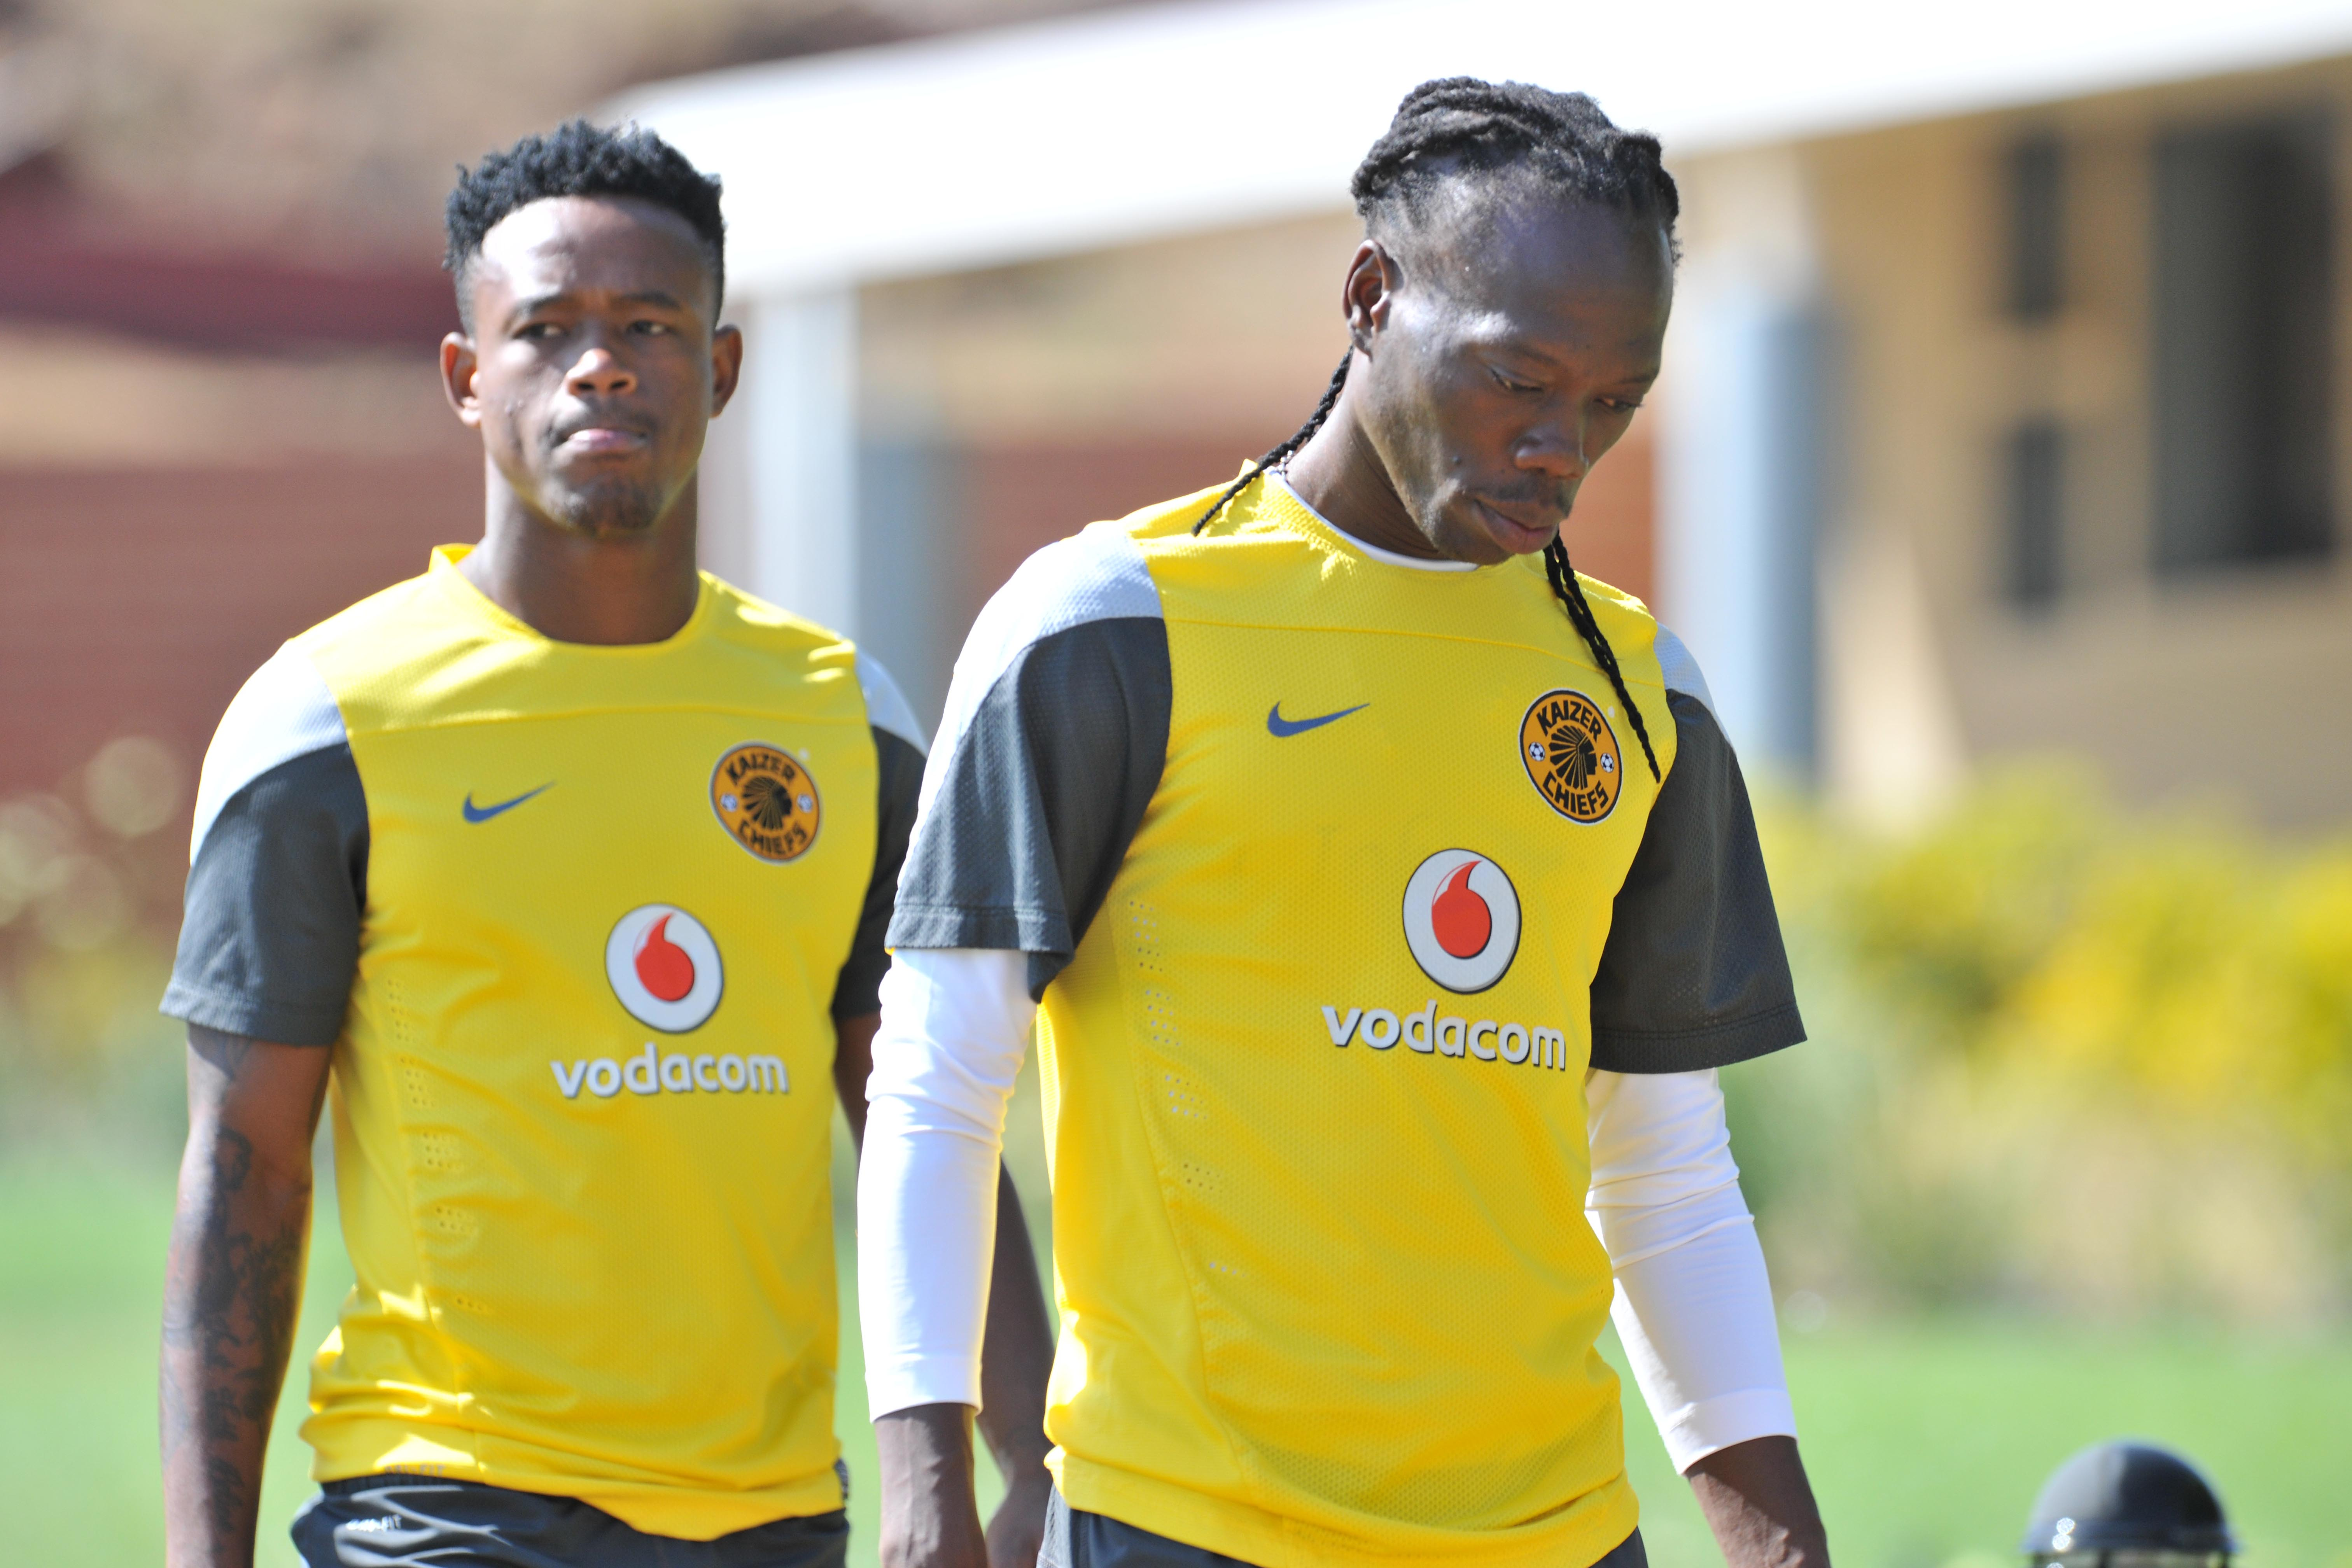 I don't think I would still be playing football if I stayed at Kaizer Chiefs - Letsholonyane